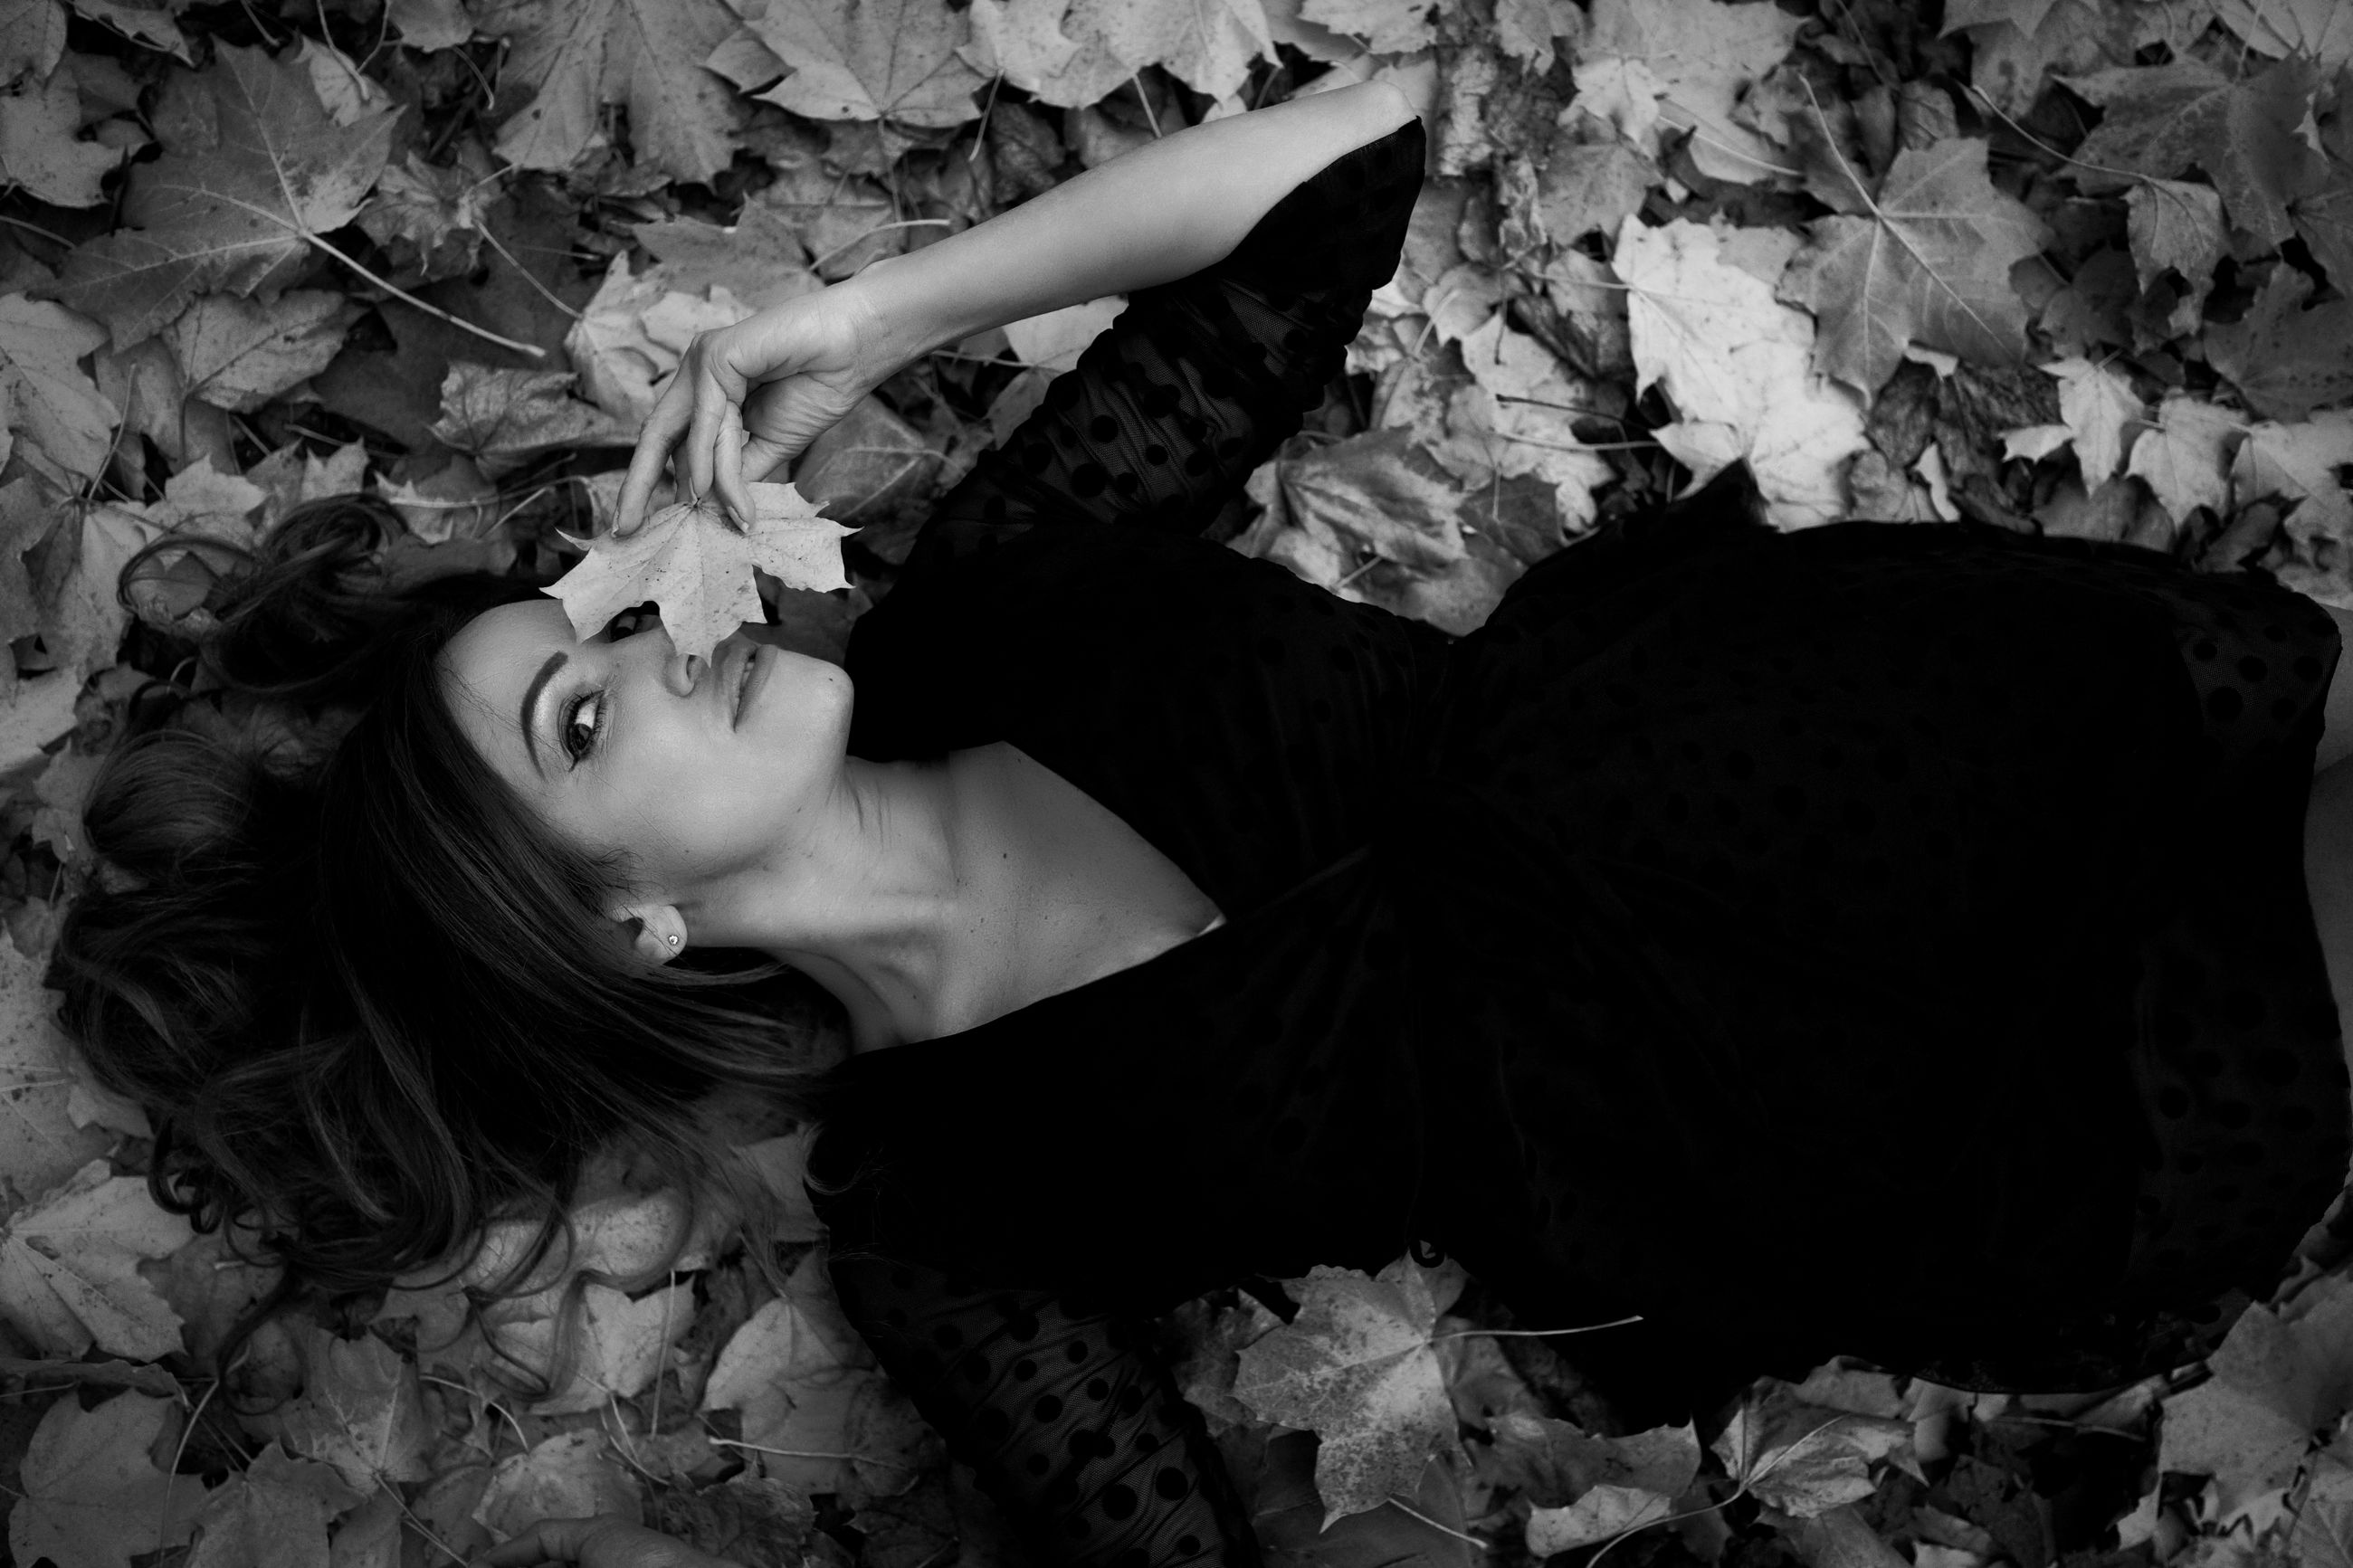 one person, black, leaf, plant part, black and white, women, lying down, adult, young adult, portrait, monochrome photography, monochrome, darkness, fashion, hairstyle, nature, high angle view, white, female, looking at camera, lifestyles, long hair, portrait photography, autumn, flower, person, lying on back, relaxation, plant, leisure activity, falling, emotion, photo shoot, indoors, dress, contemplation, clothing